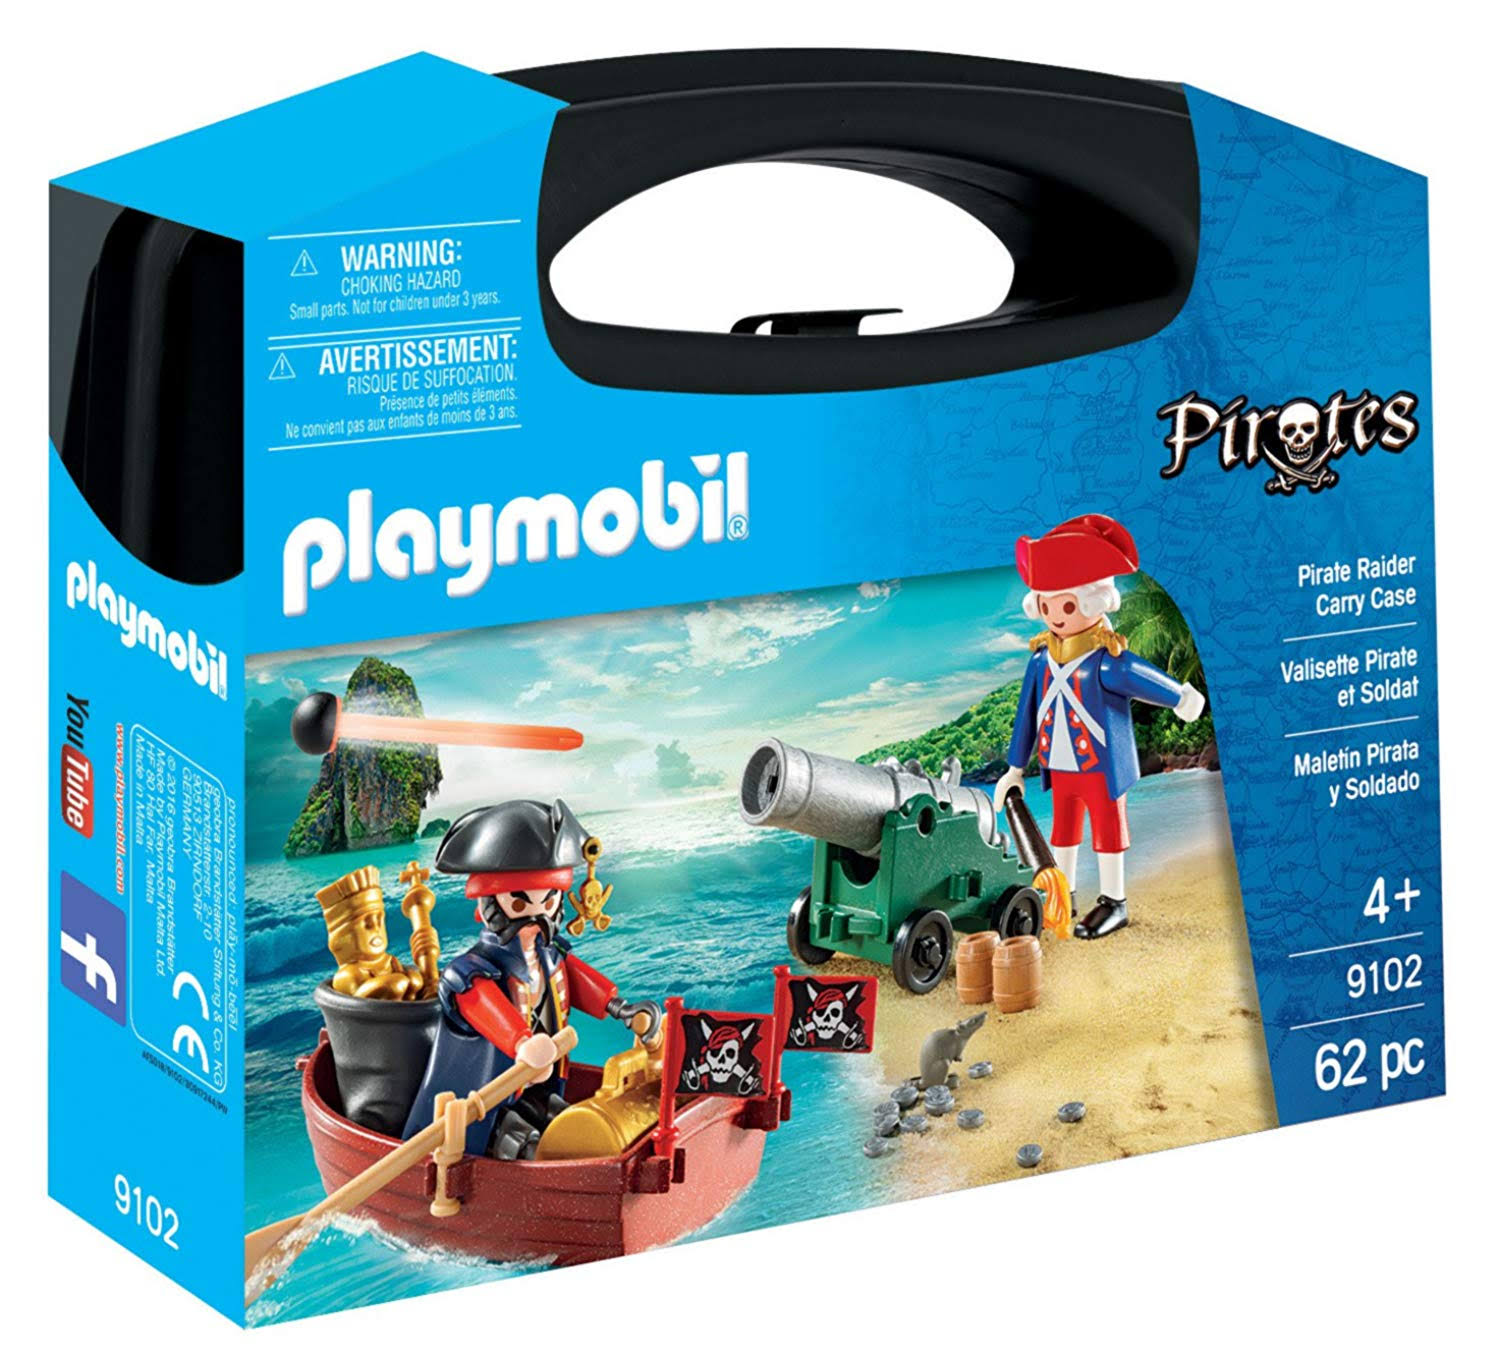 Playmobil Carry Case - Pirate Raider, 62pcs